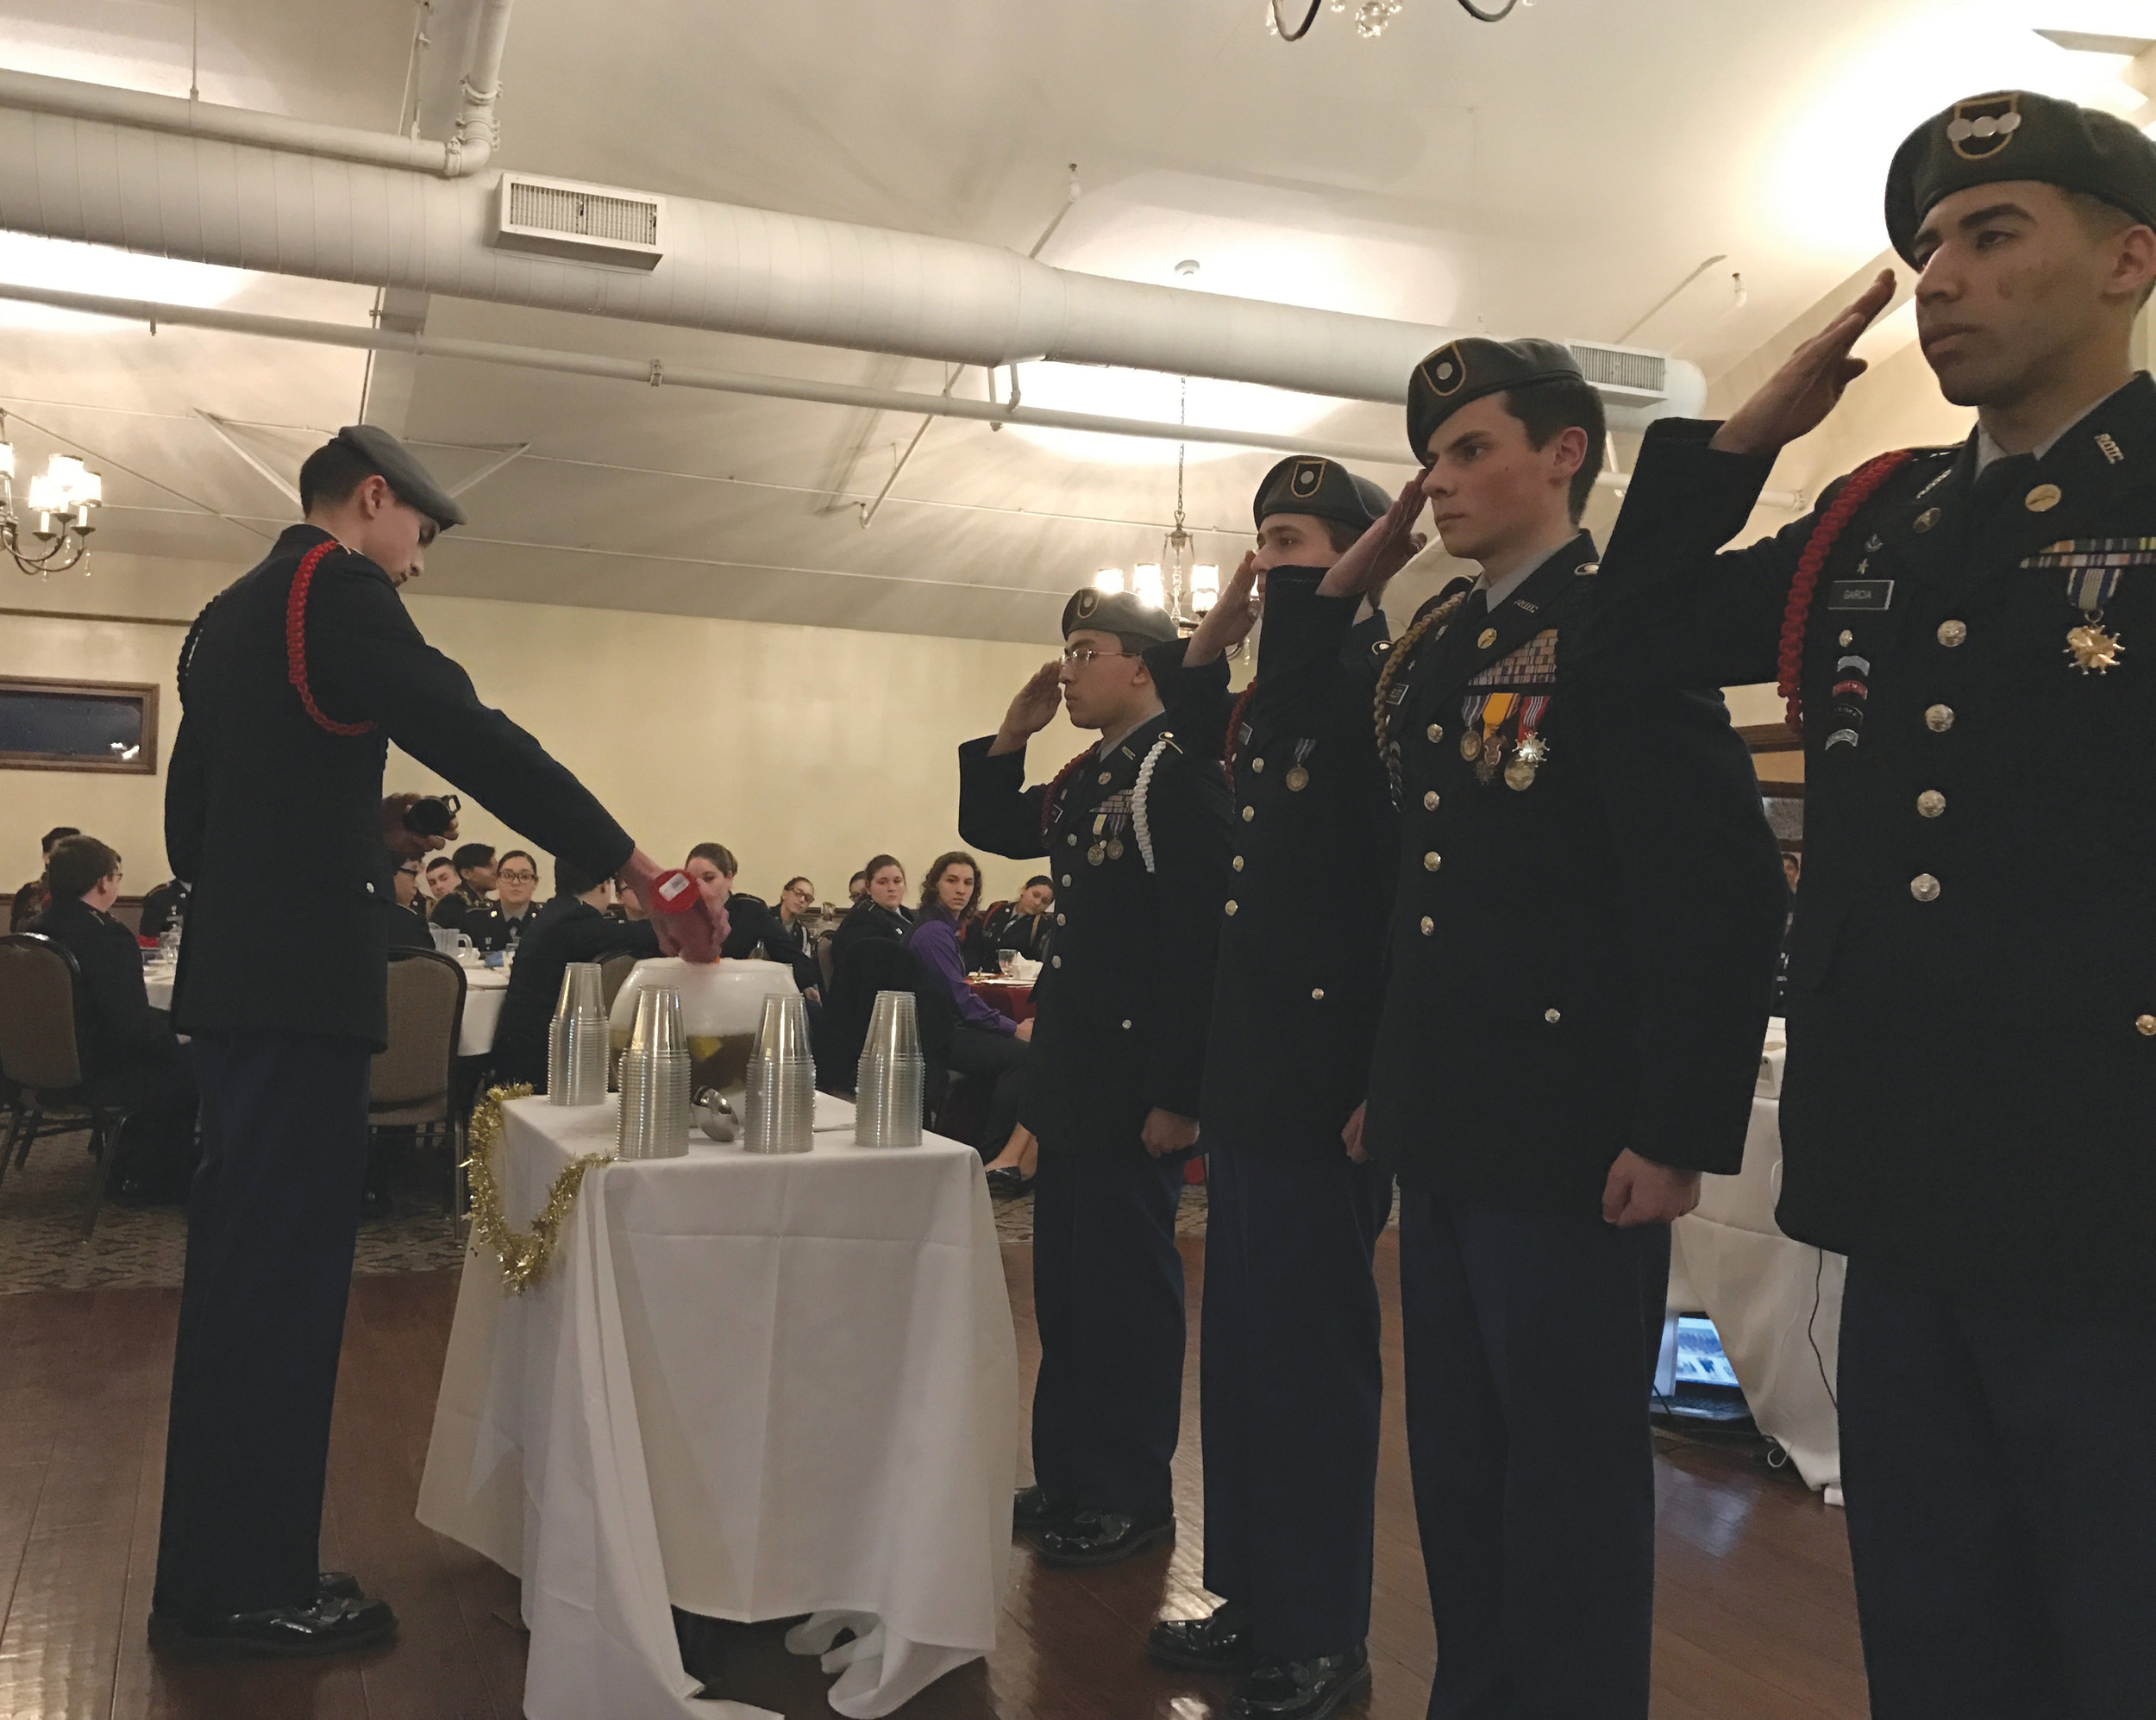 CHEERS TO THE GROG: Members of the JROTC Honor Guard watch as another ingredient is added to the punch bowl at the JROTC military ball on March 11.